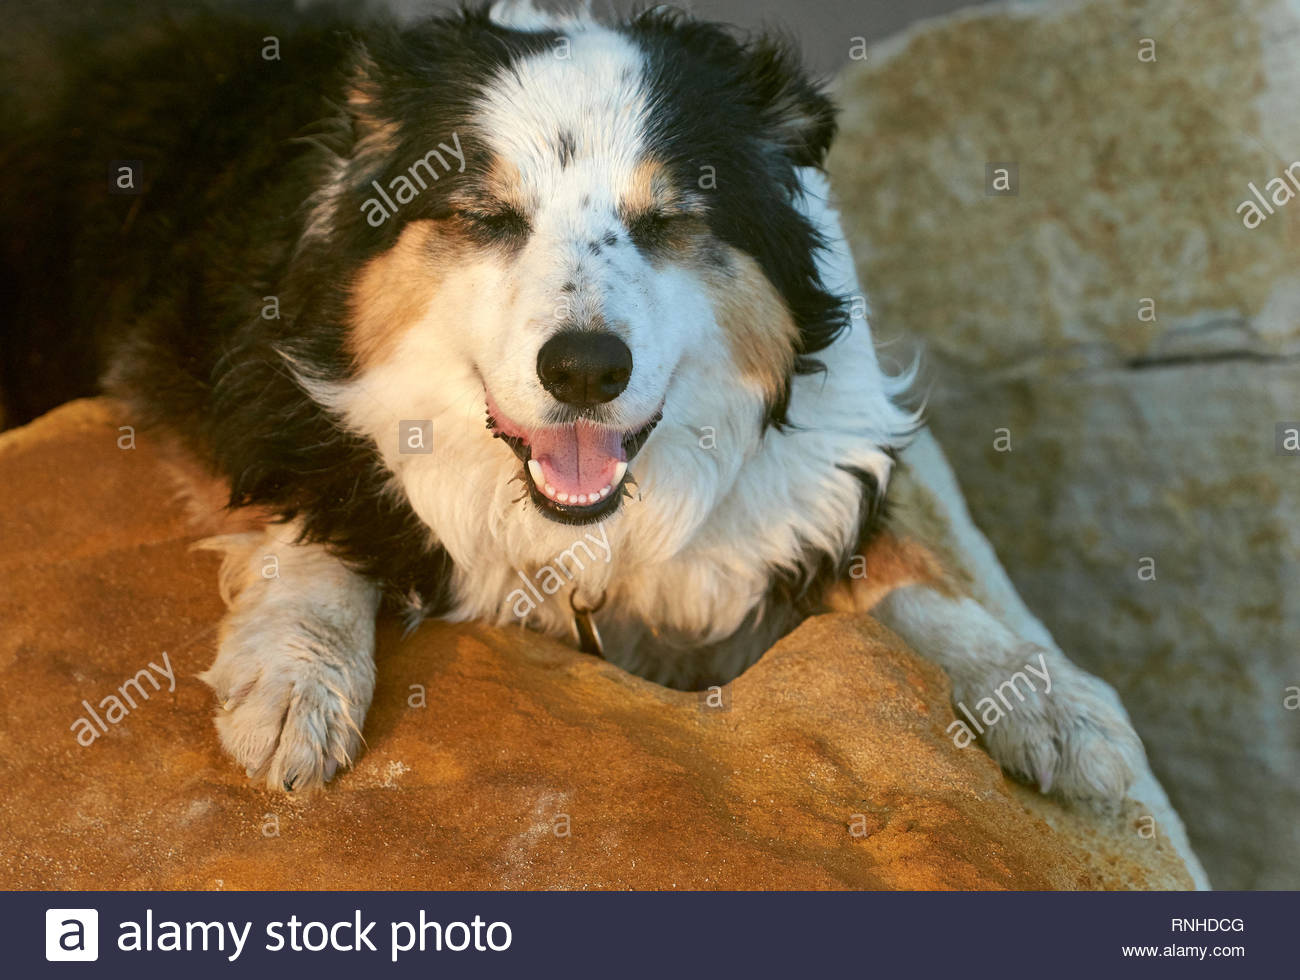 A beautiful Border Collie dog, resting on golden boulders in the sun - eyes closed and mouth open - on a summer's afternoon in Yamba, NSW, Australia. - Stock Image